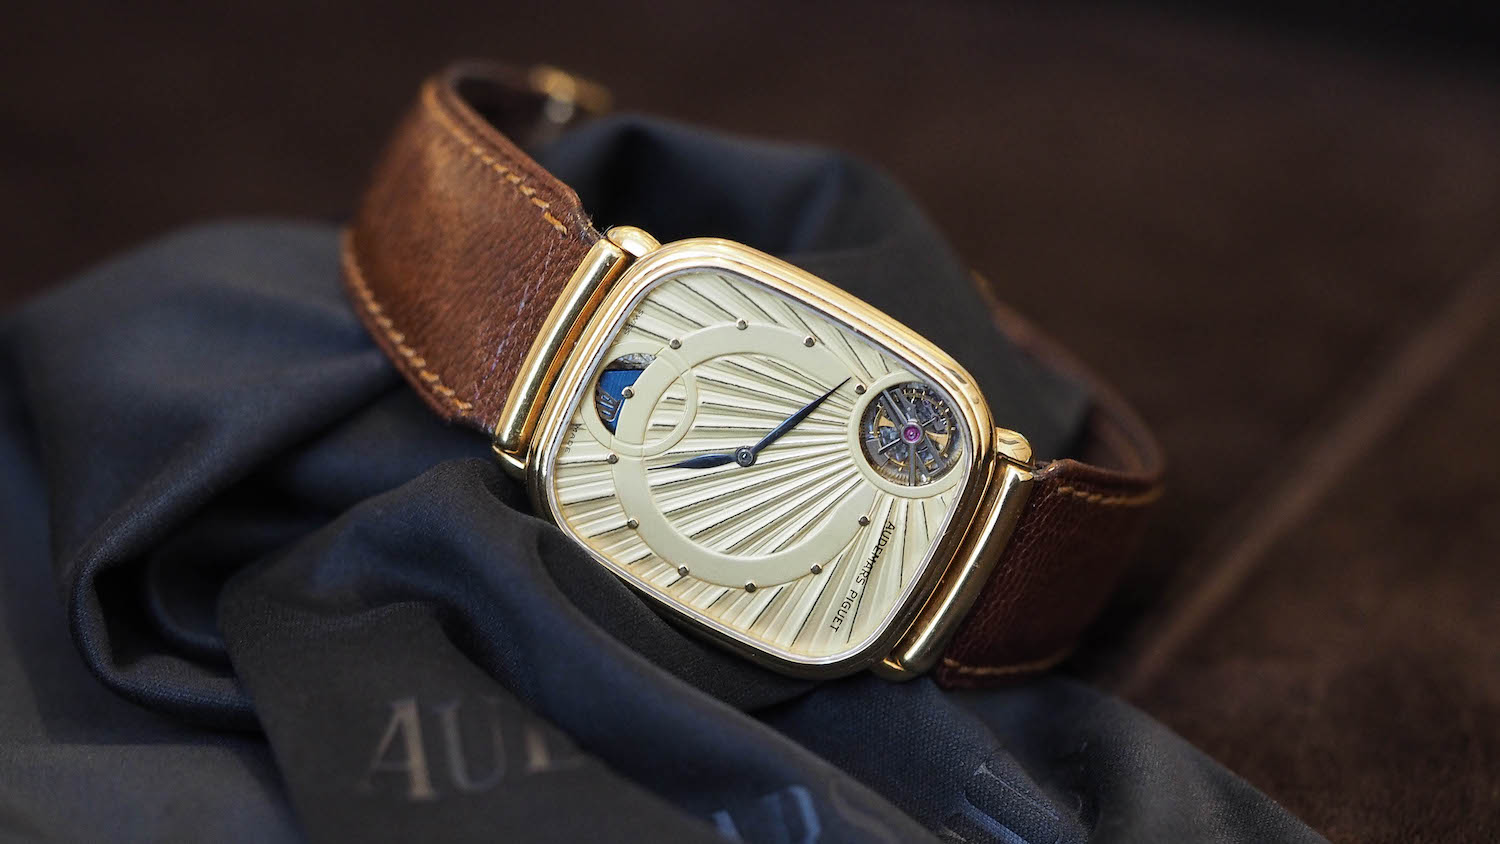 6 Ultra-Thin Watches that break records (thinnest watch, thinnest chronograph, thinnest minute repeater, thinnest tourbillon…)